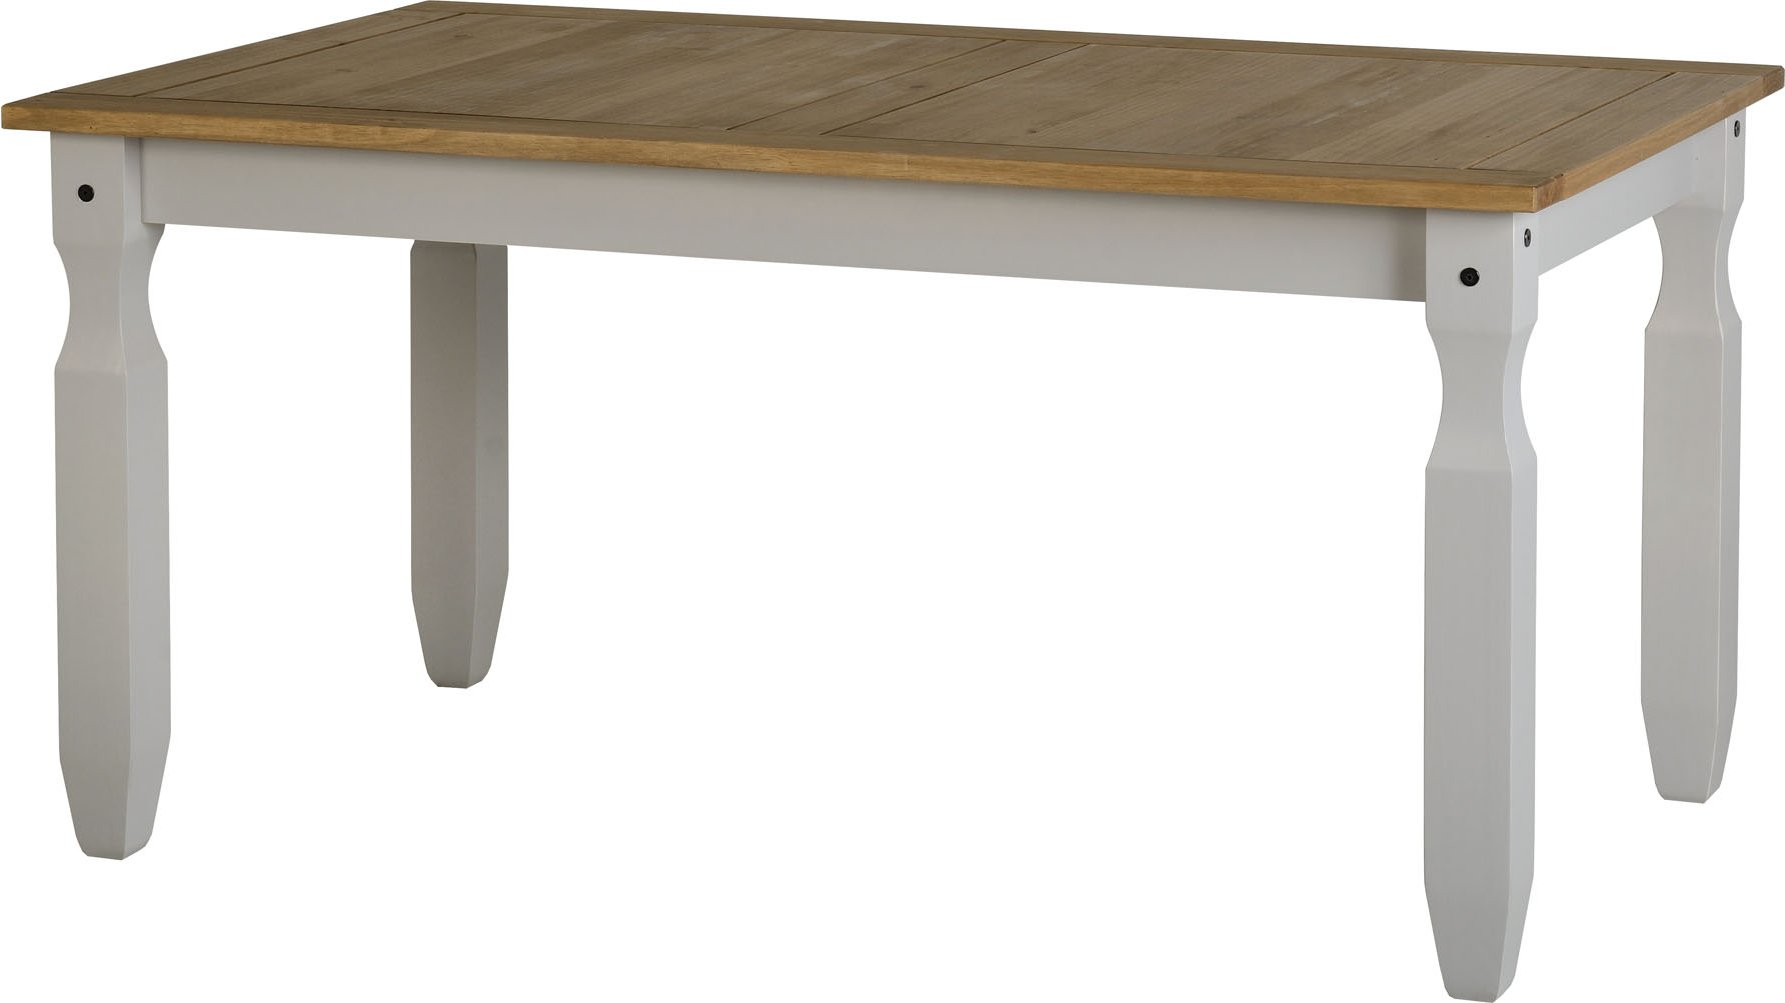 Valufurniture valufurniture corona dining set grey for Grey dining room table